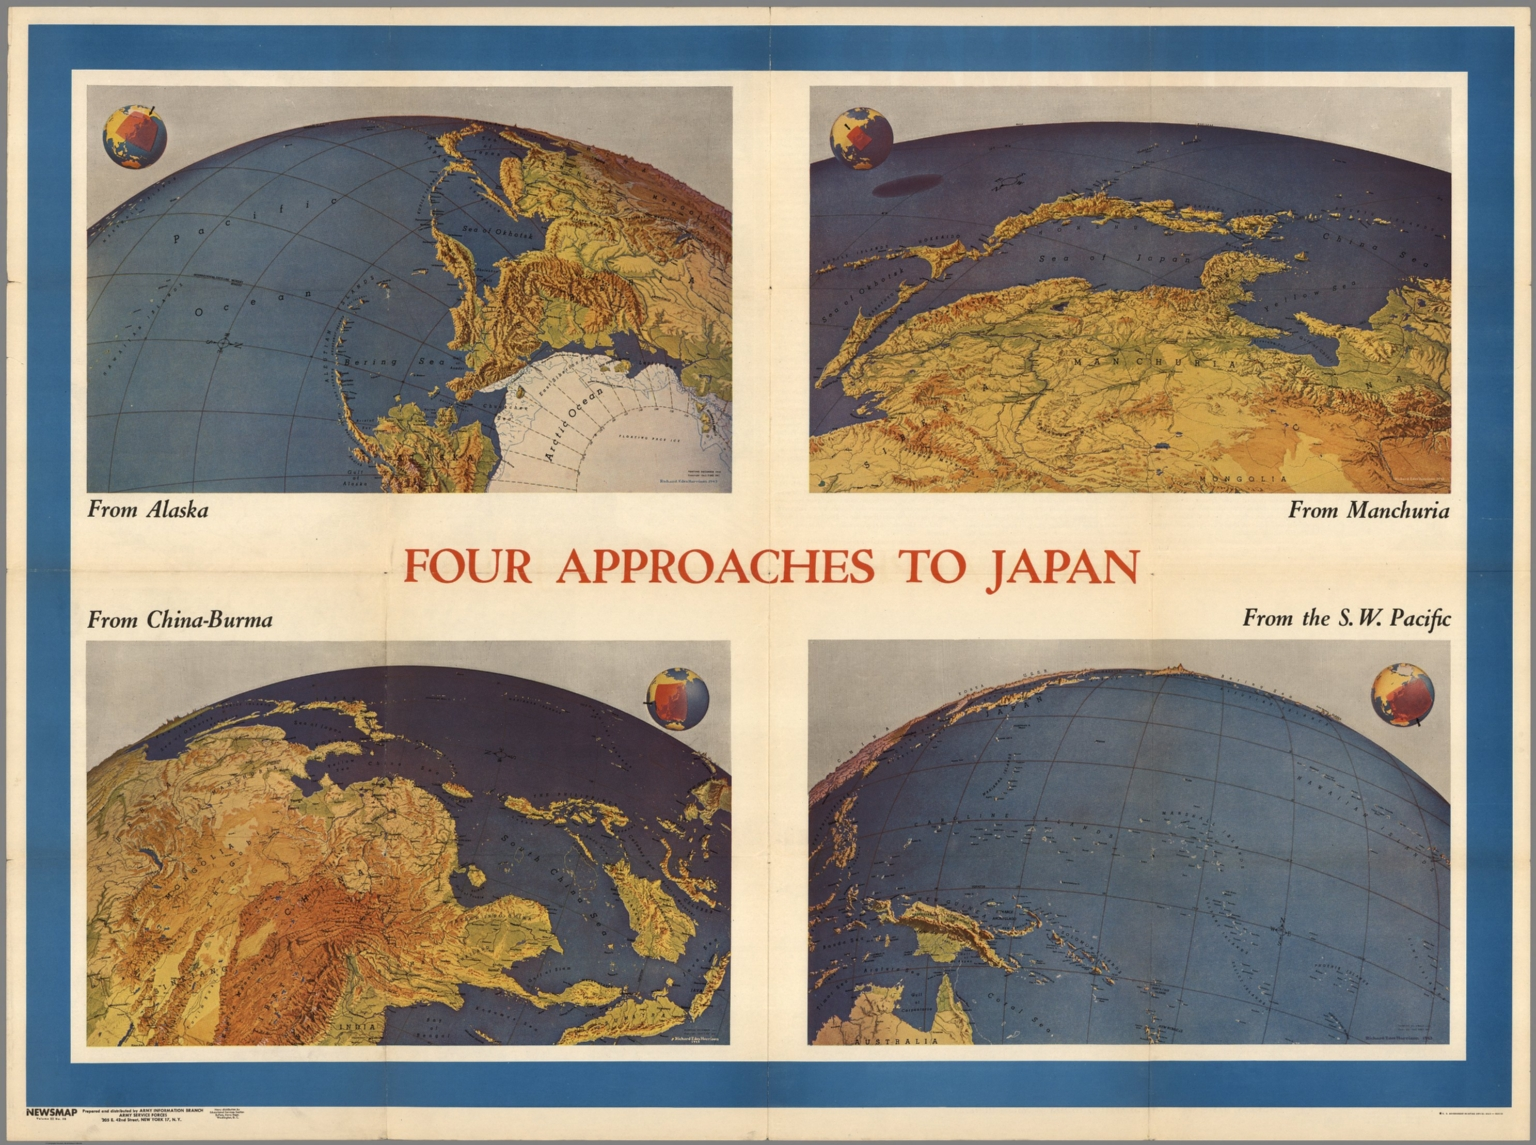 Four approaches to japan from alaska china burma manchuria sw four approaches to japan from alaska china burma manchuria sw pacific newsmap mond gumiabroncs Images